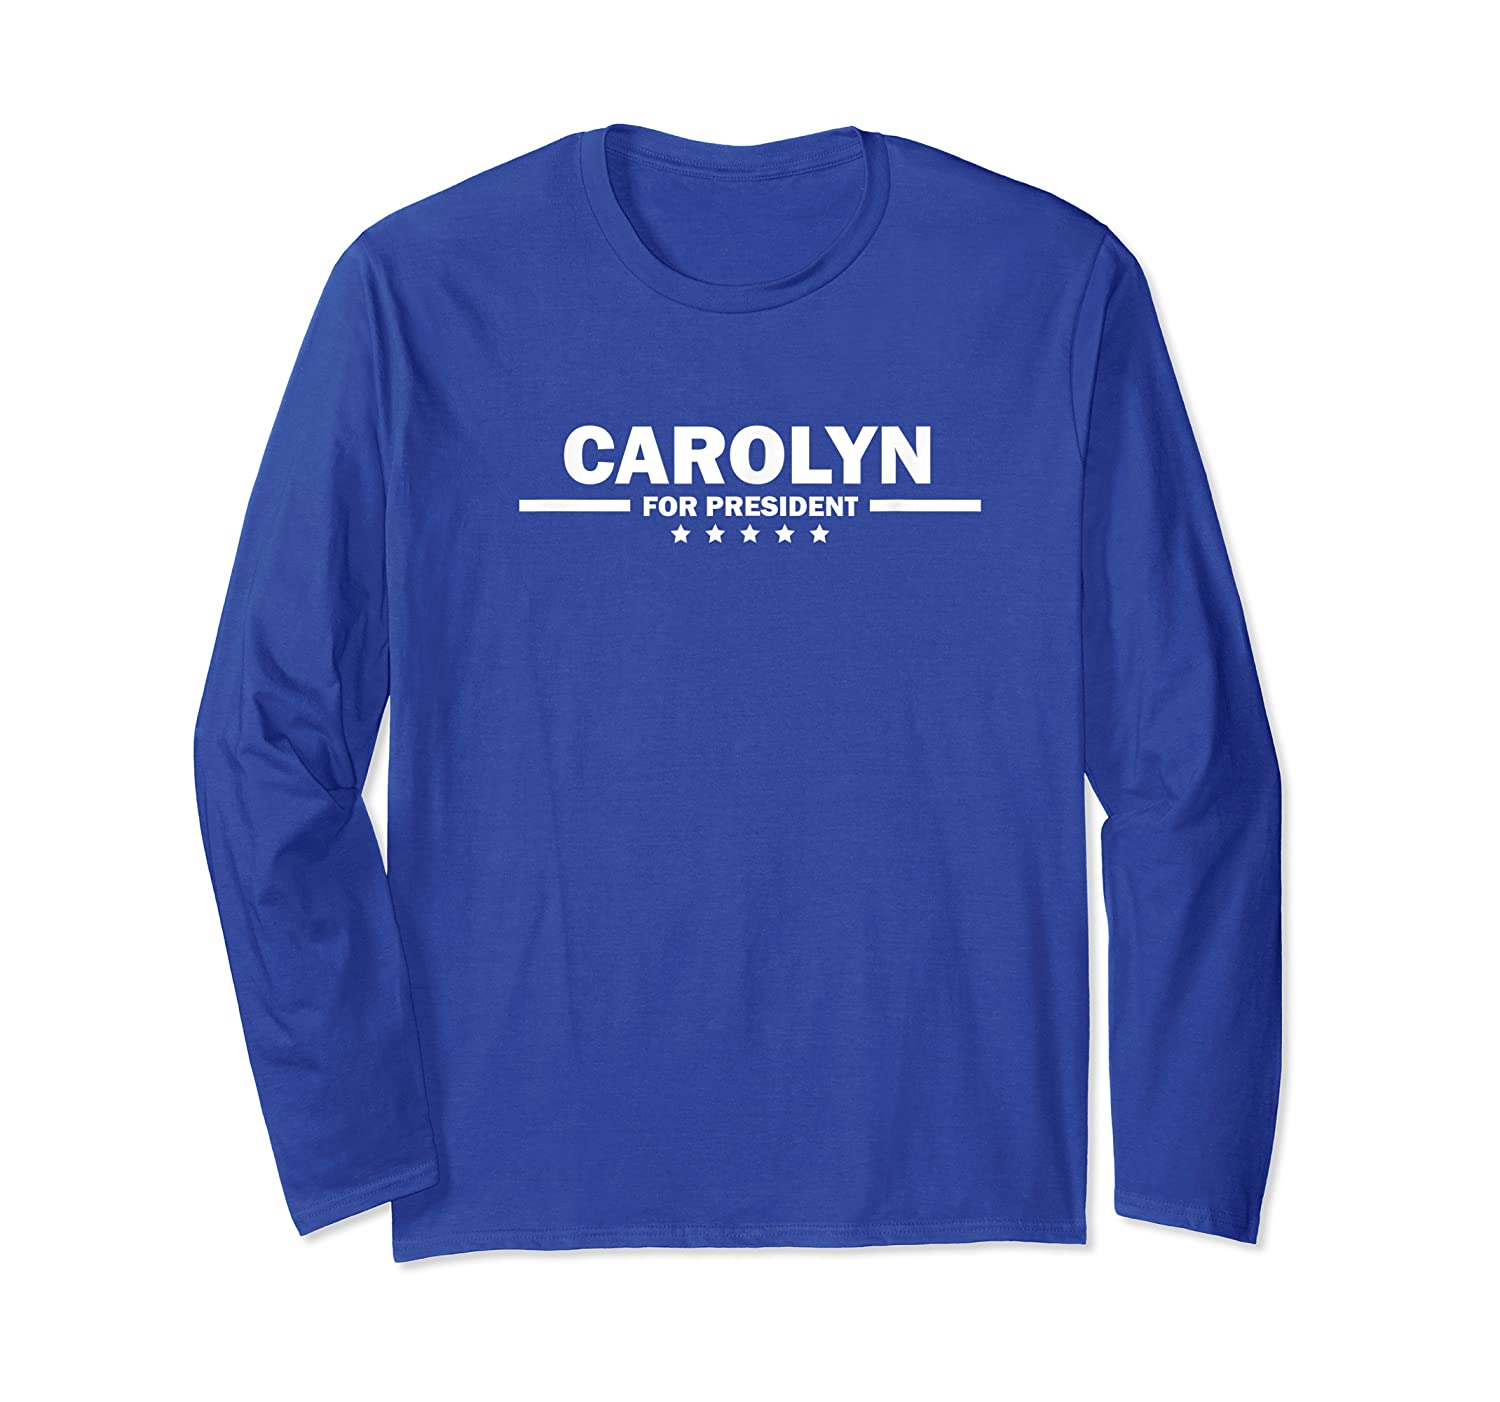 Carolyn For President Personal Fake Campaign Shirts Long Sleeve T-shirt